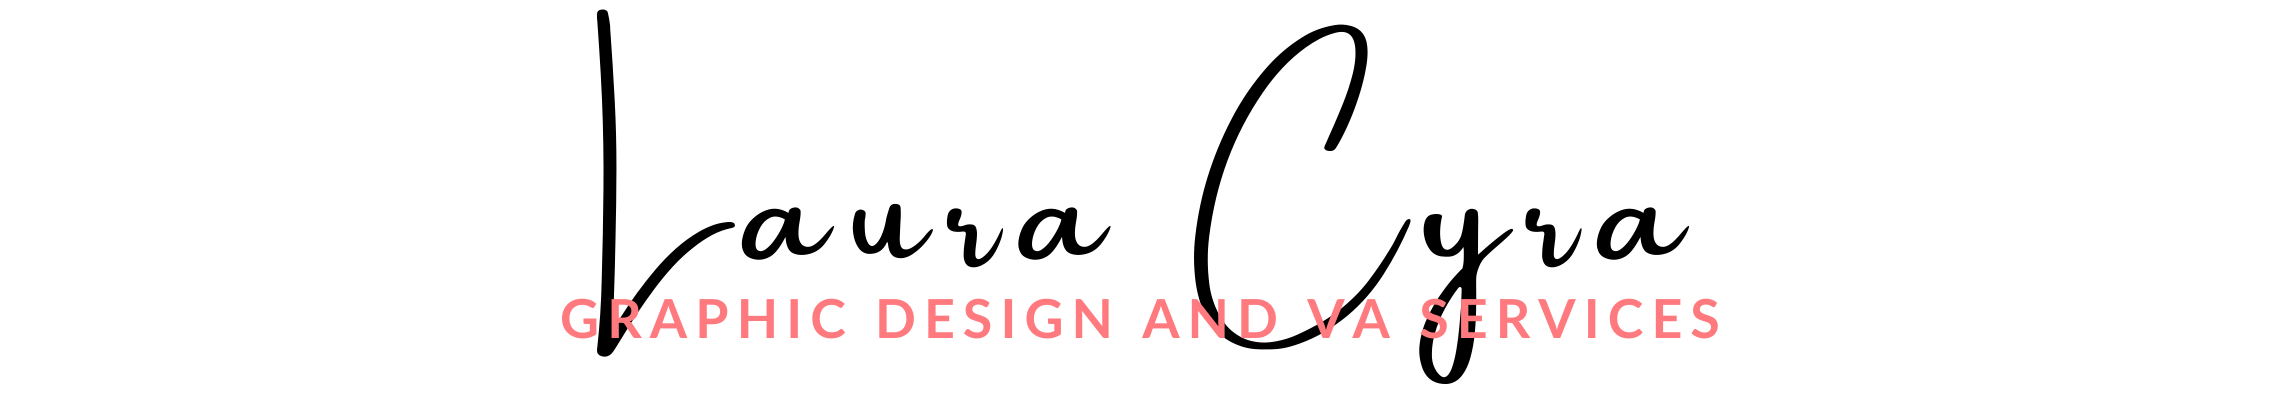 cropped-Laura-Cyra-Header-Logo.png